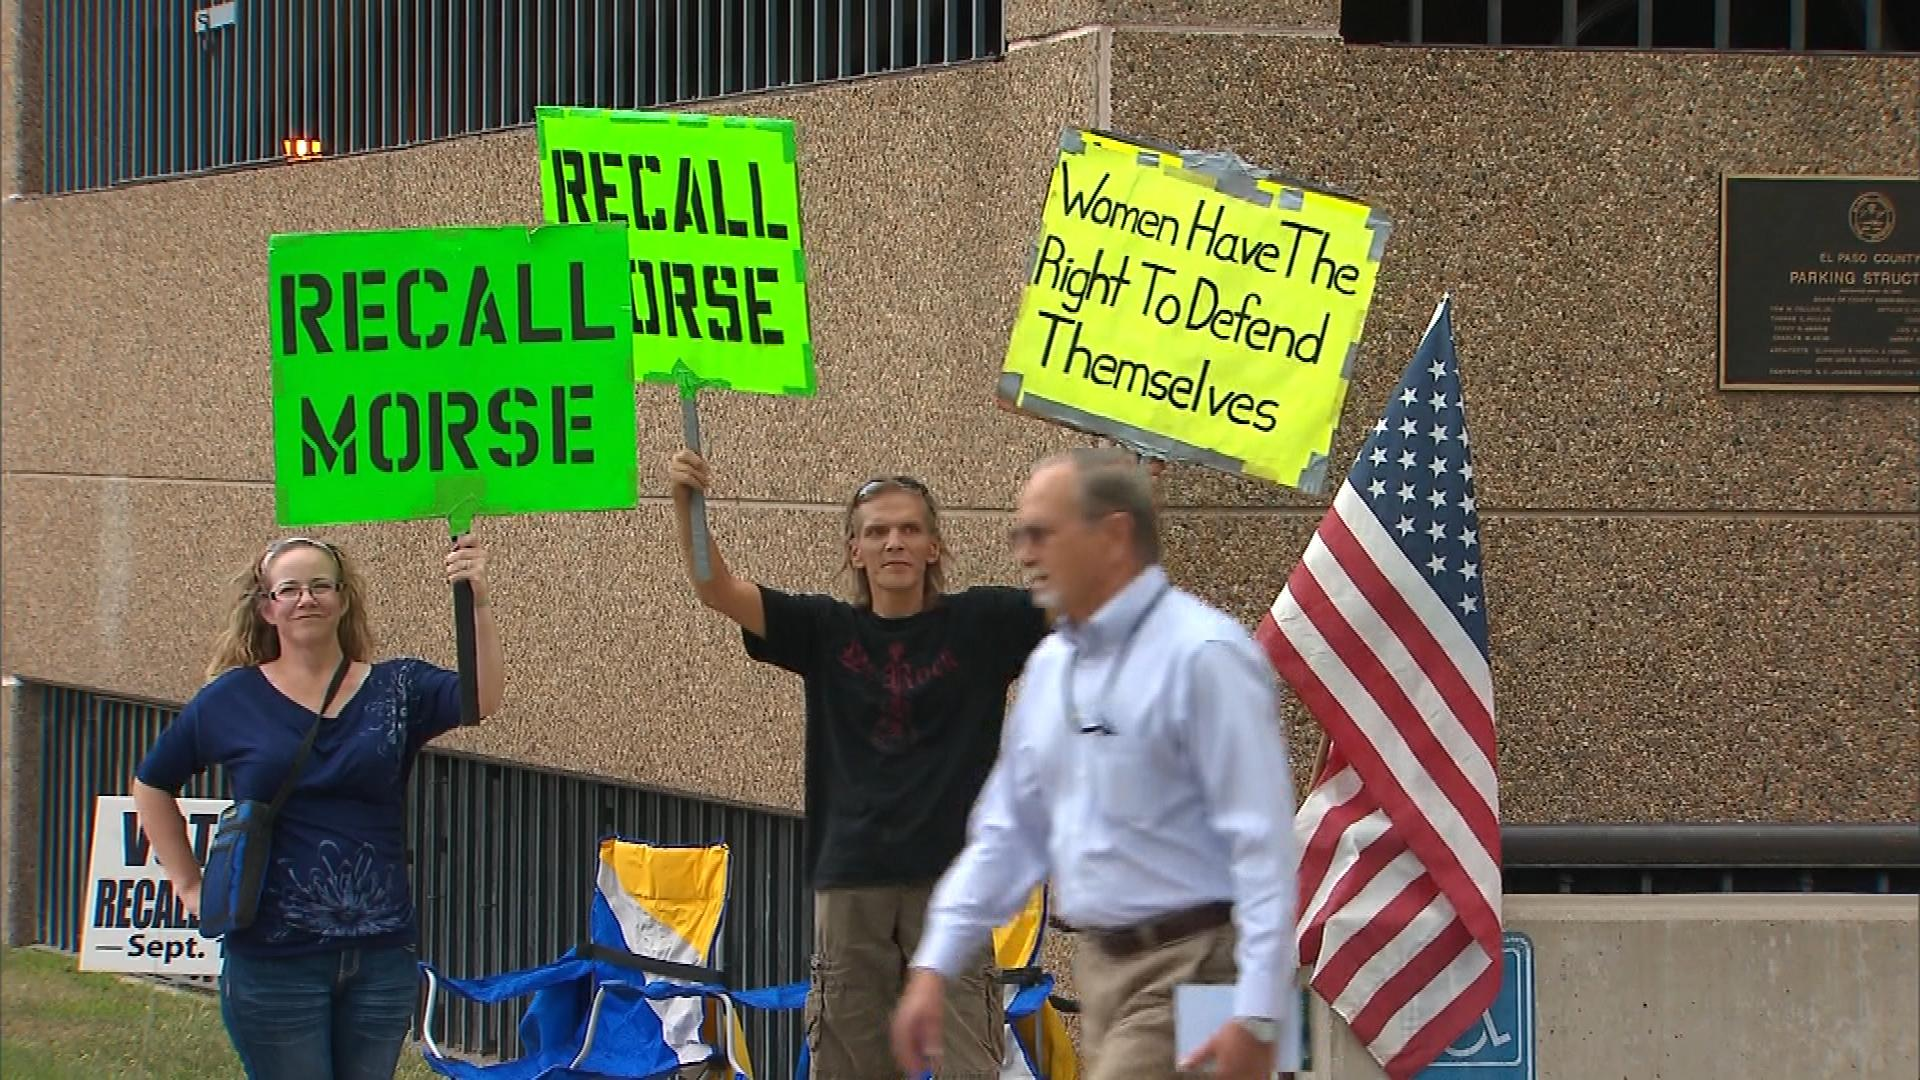 Residents hold up signs during the recall election in September. (credit: CBS)